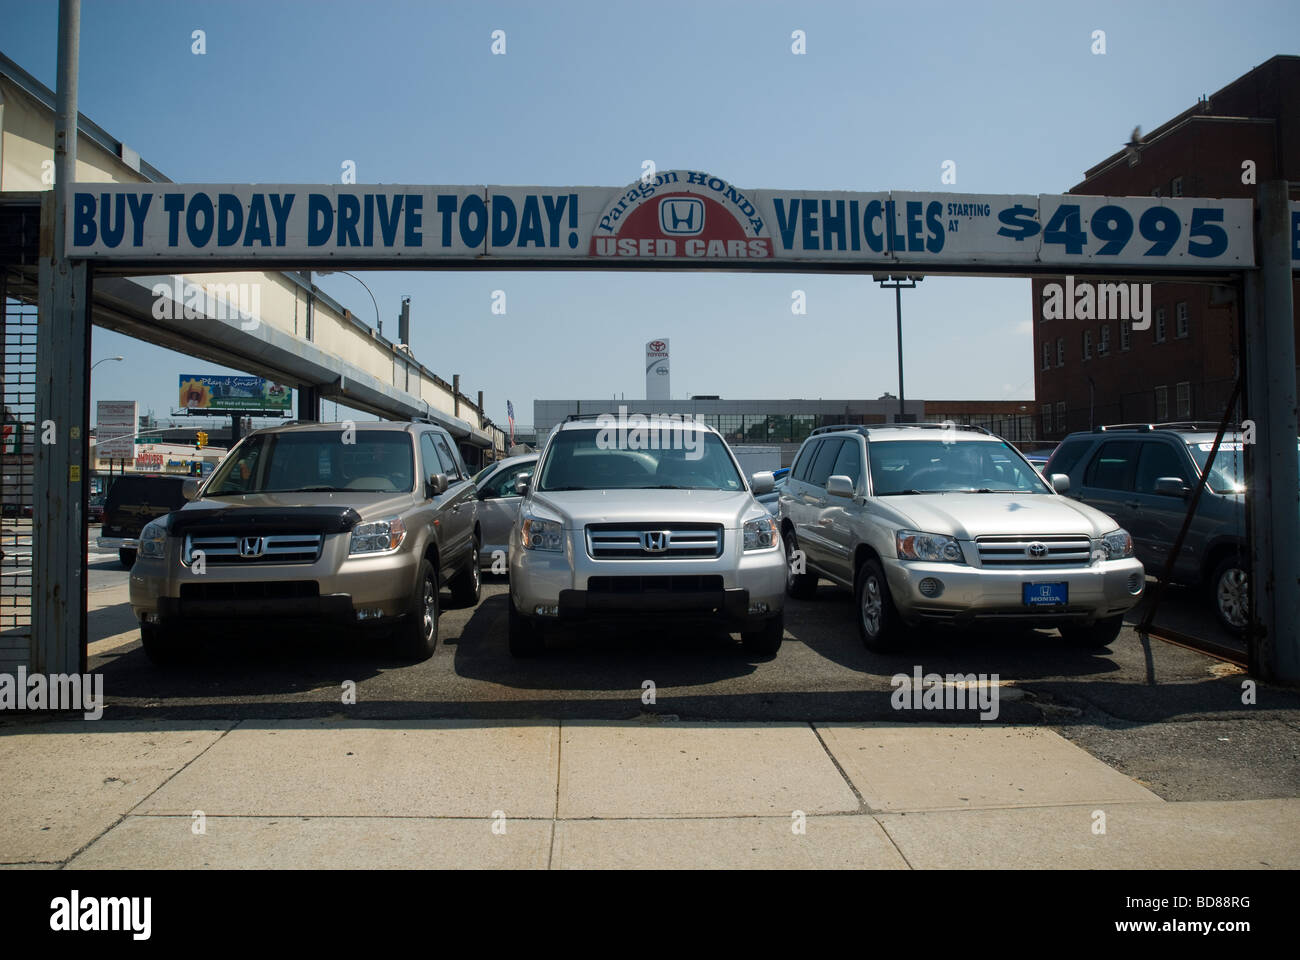 without pre honda inventory luxury owned the venza used awd utility sport toyota price